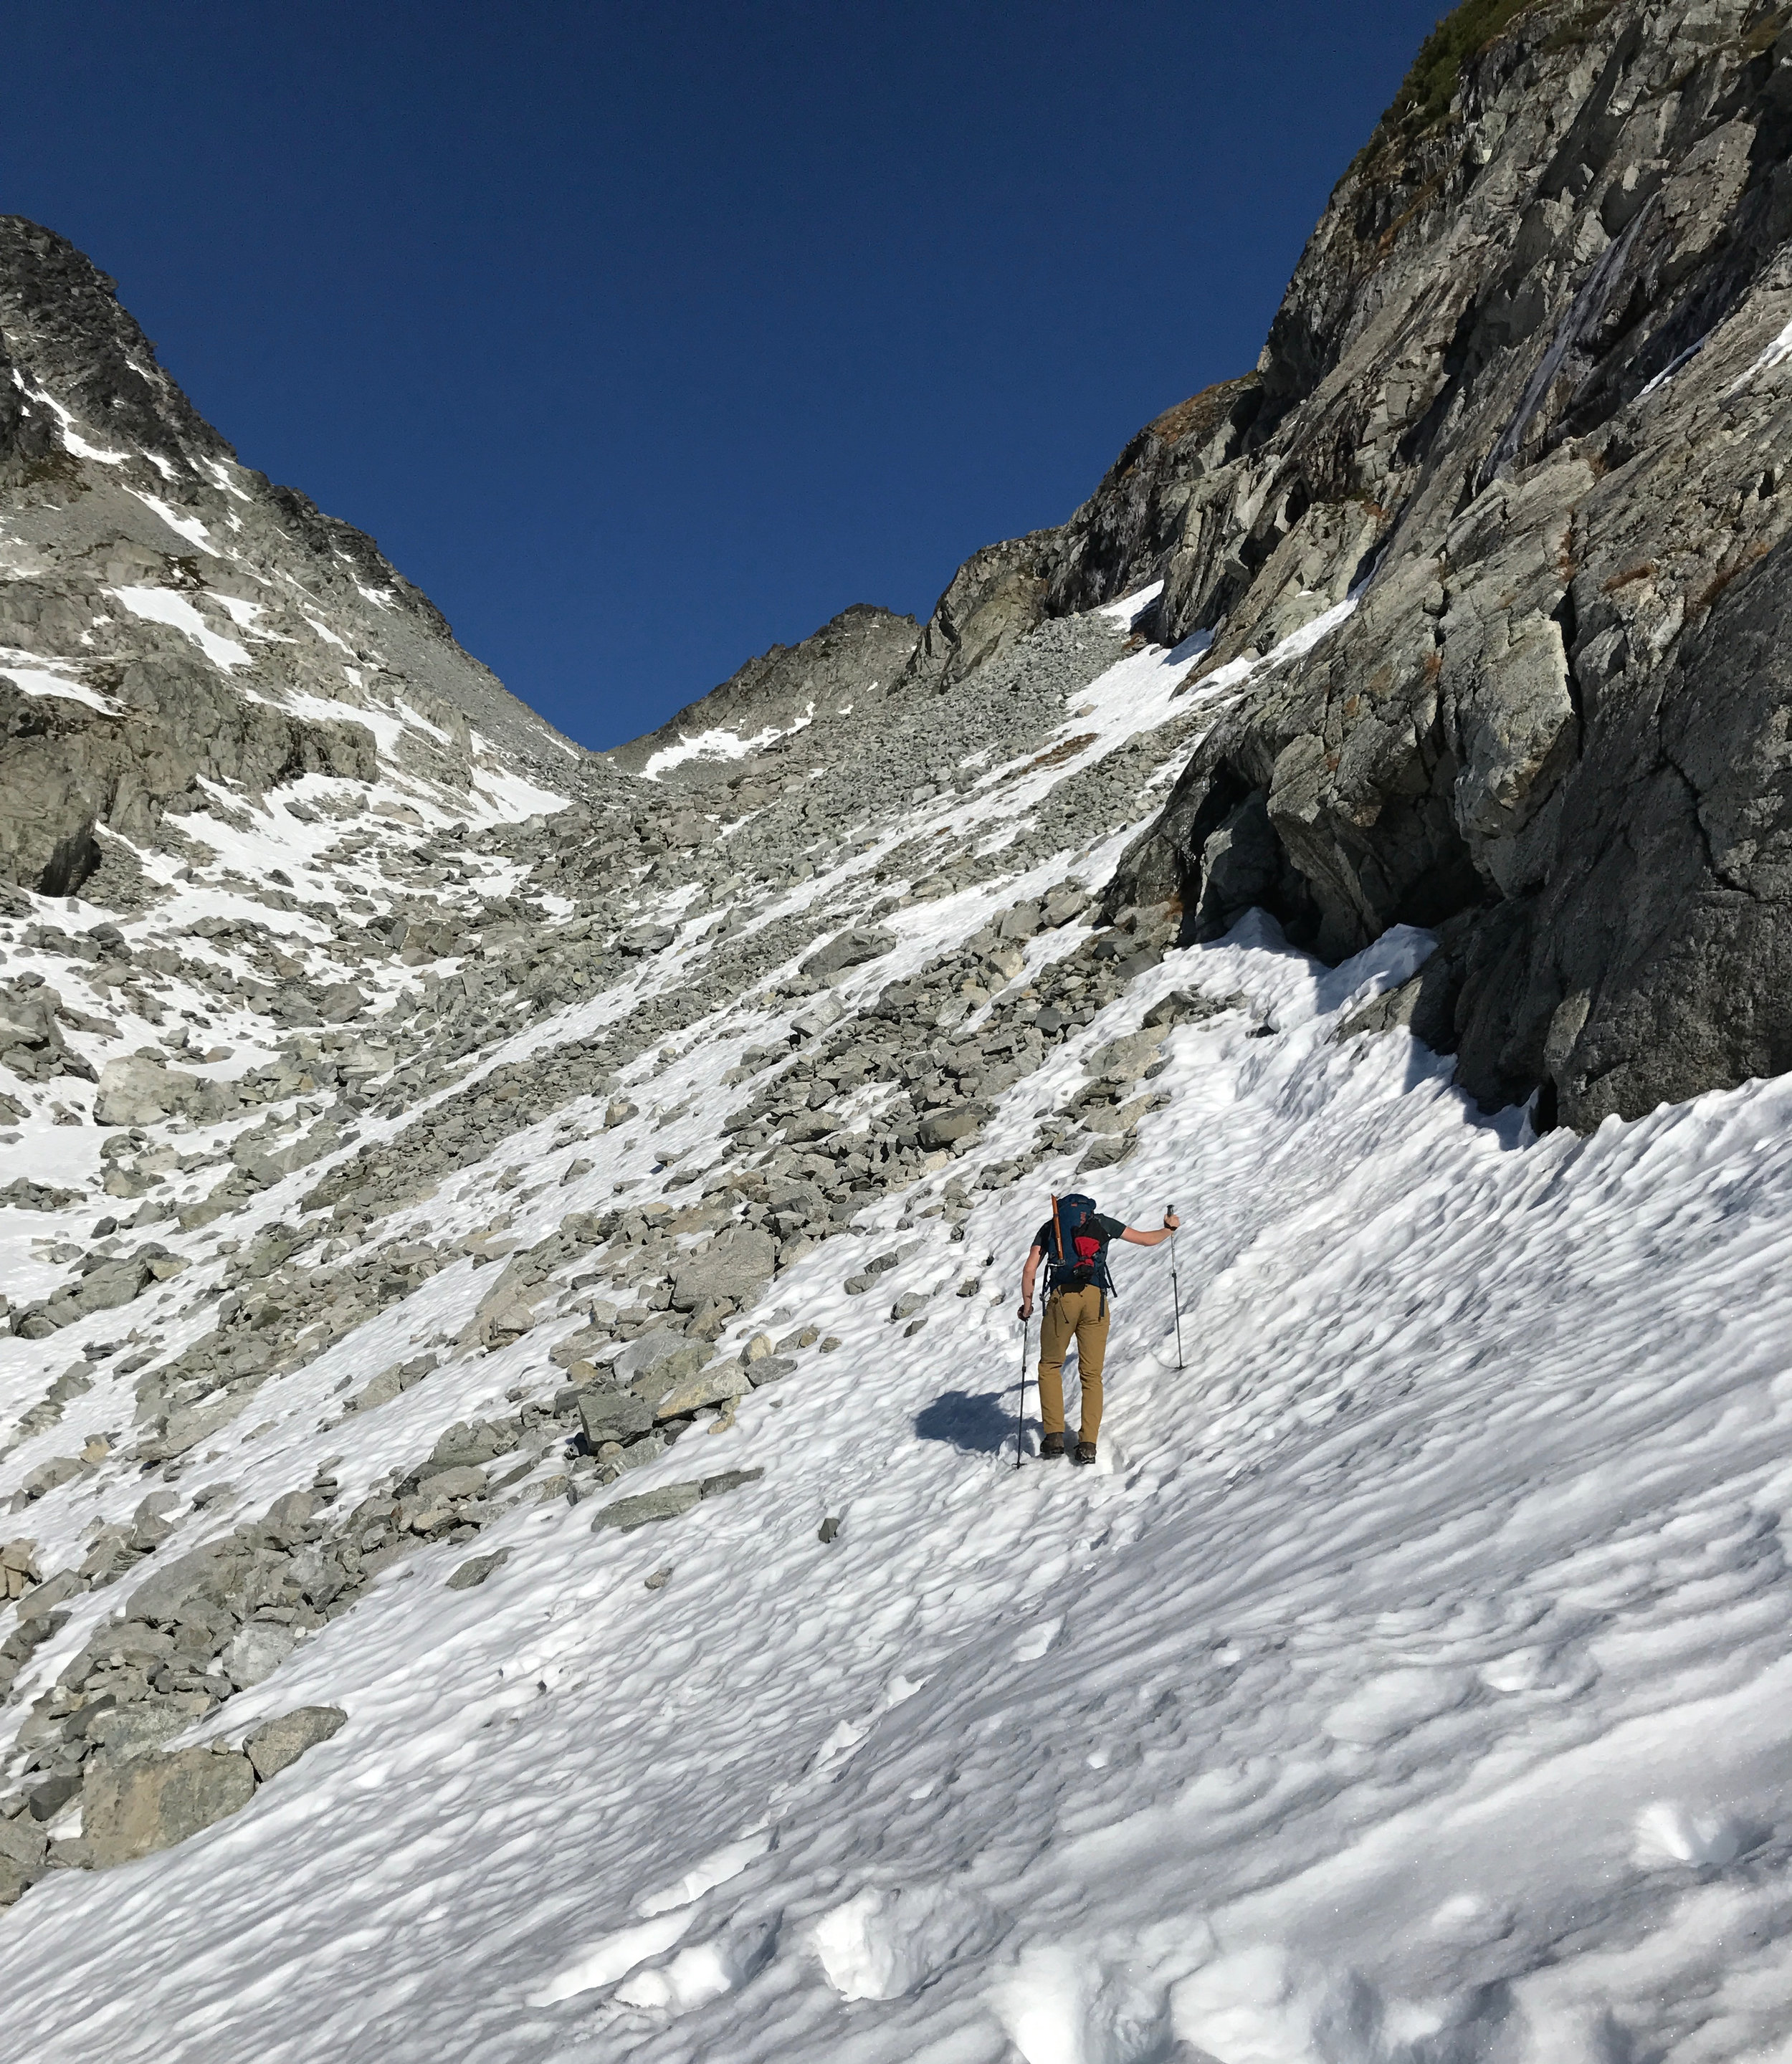 Ty leading the way across frozen snow - we both had two trekking poles for most of the trip, but as things got steeper we switched to mountaineering axes.